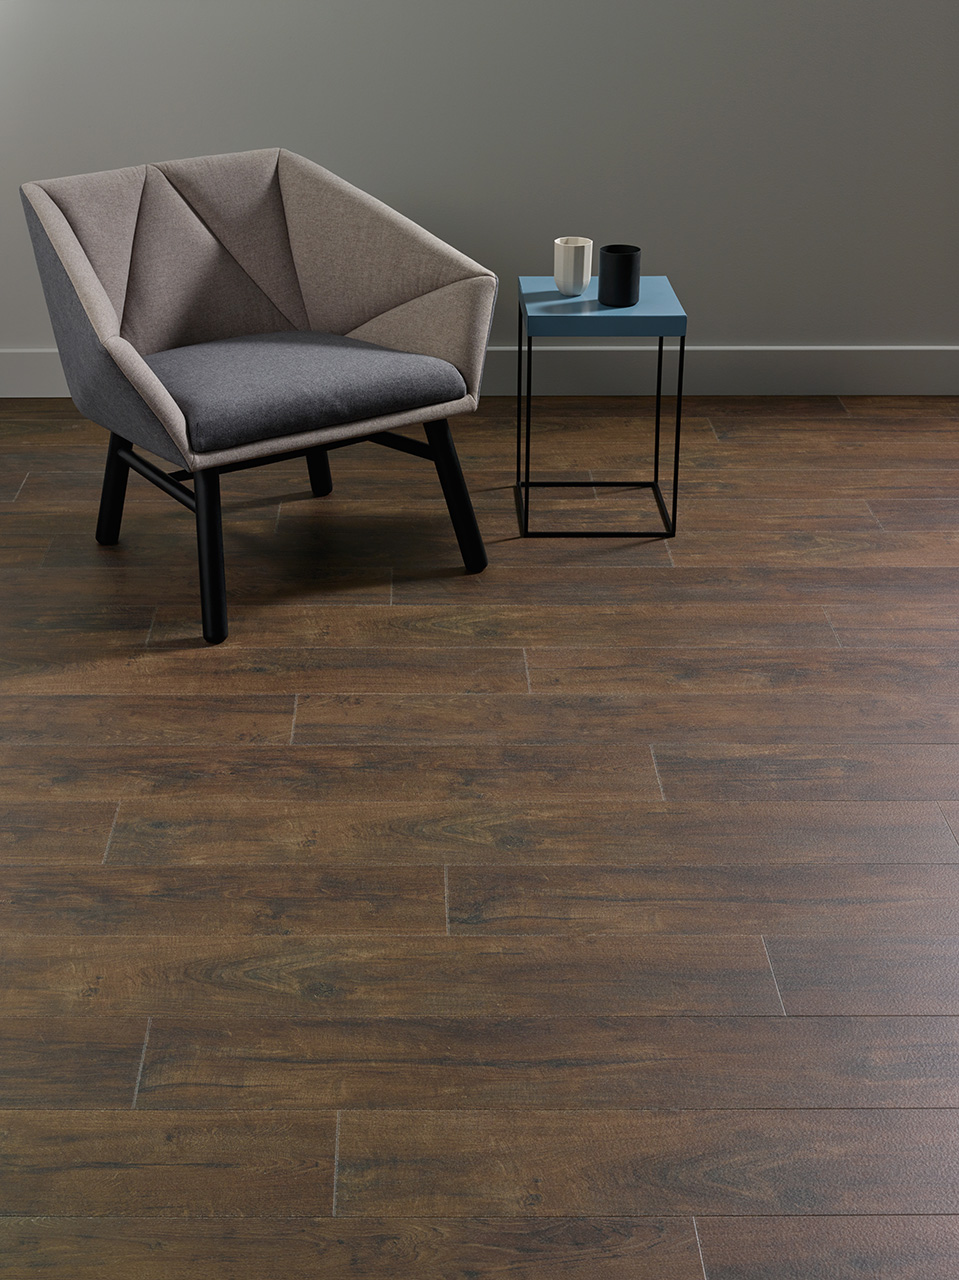 Amtico Spacia 36+, Rustic Barn Wood, SG5W2513 in Stripwood laying pattern